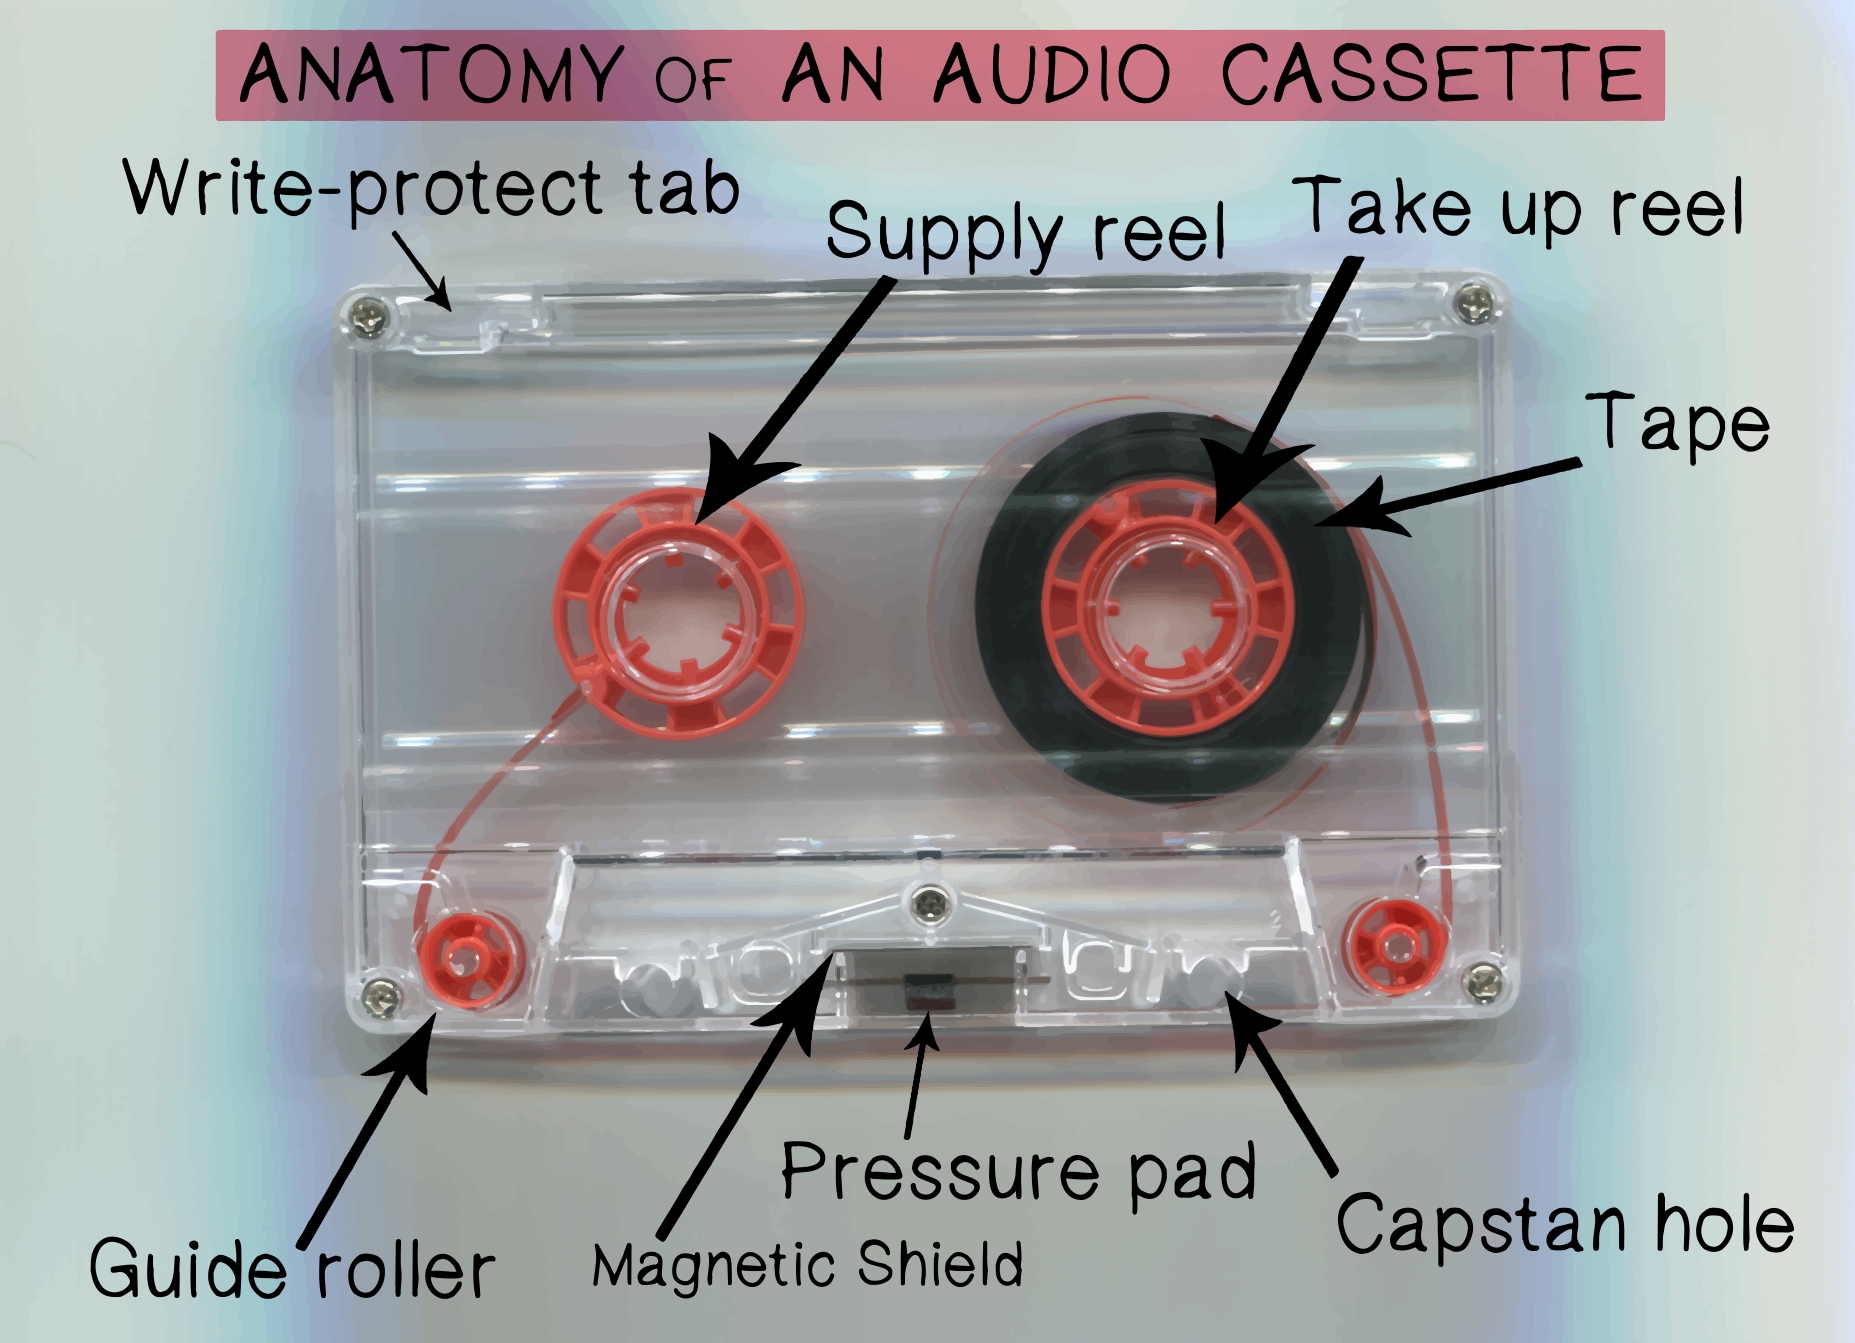 Anatomy of a Cassette